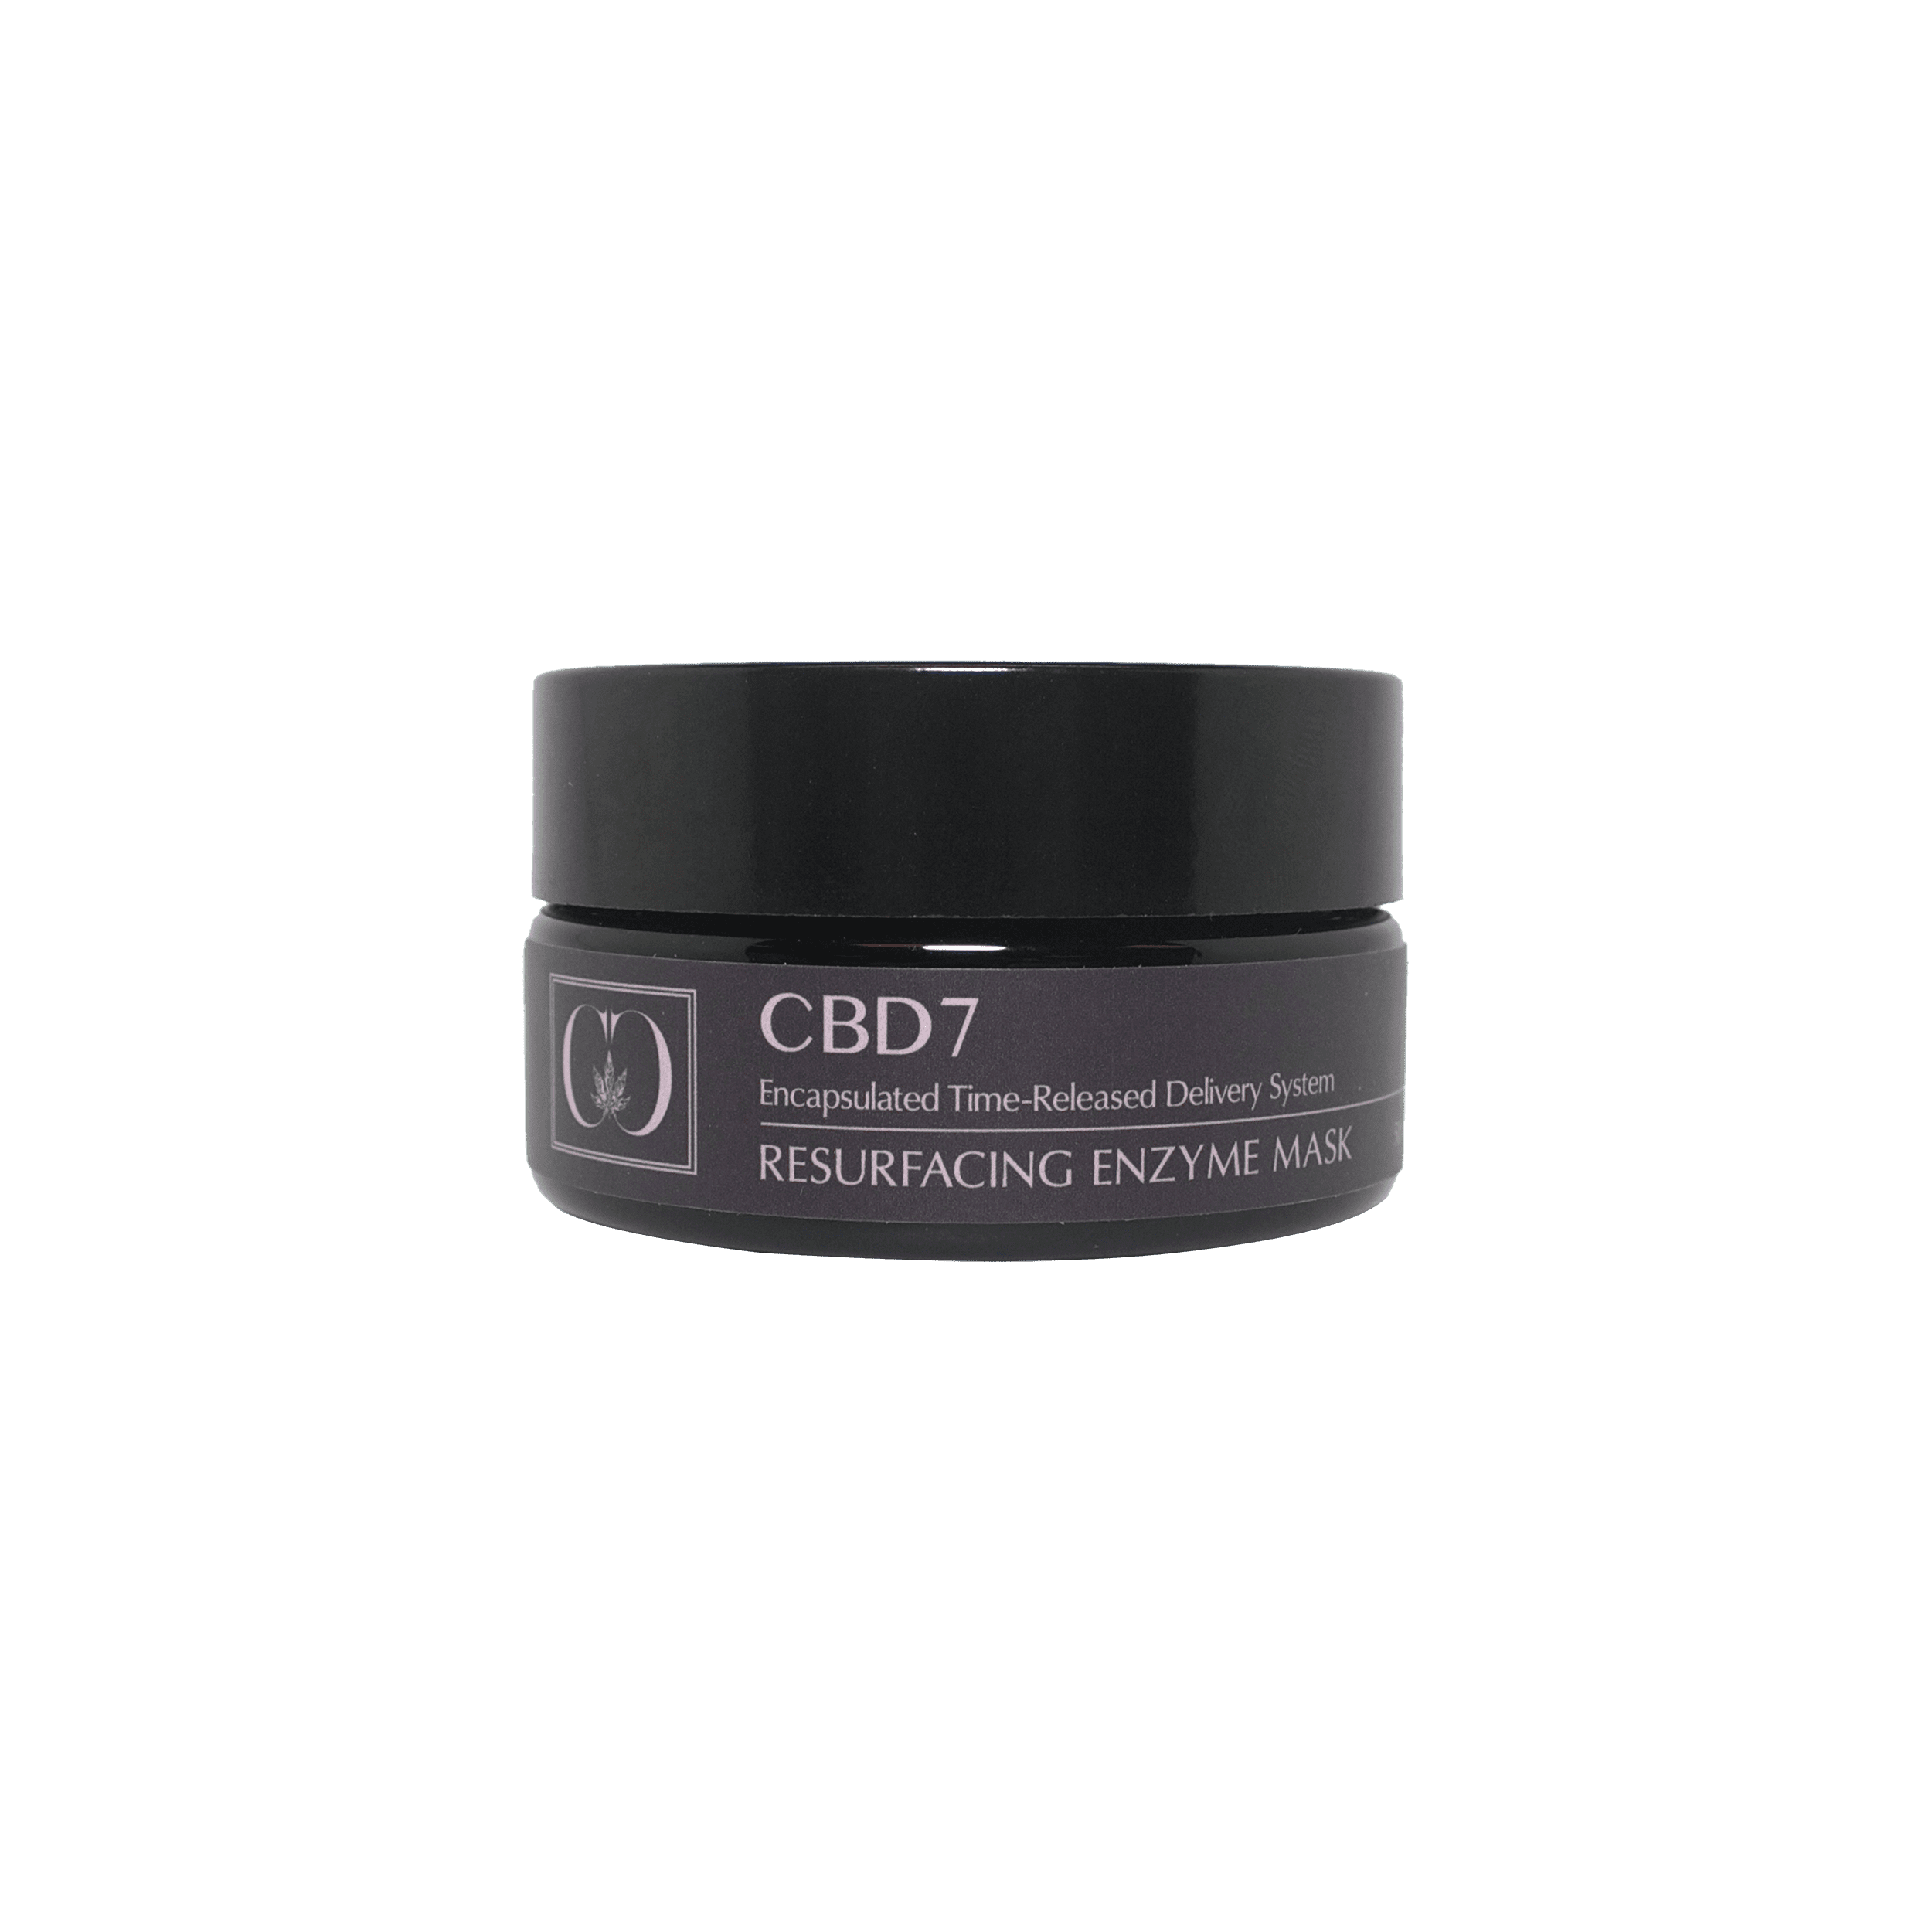 Resurfacing Enzyme Mask